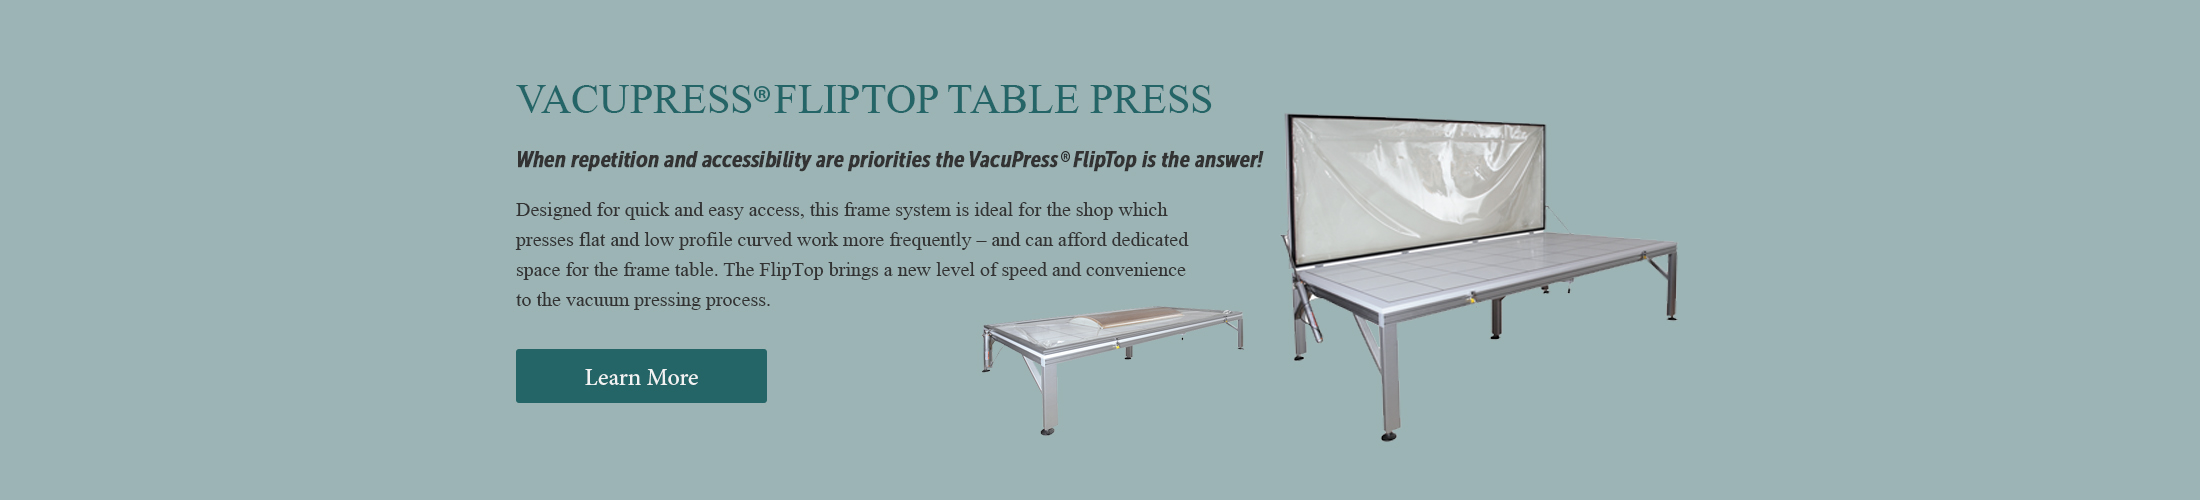 vacupress fliptop table press